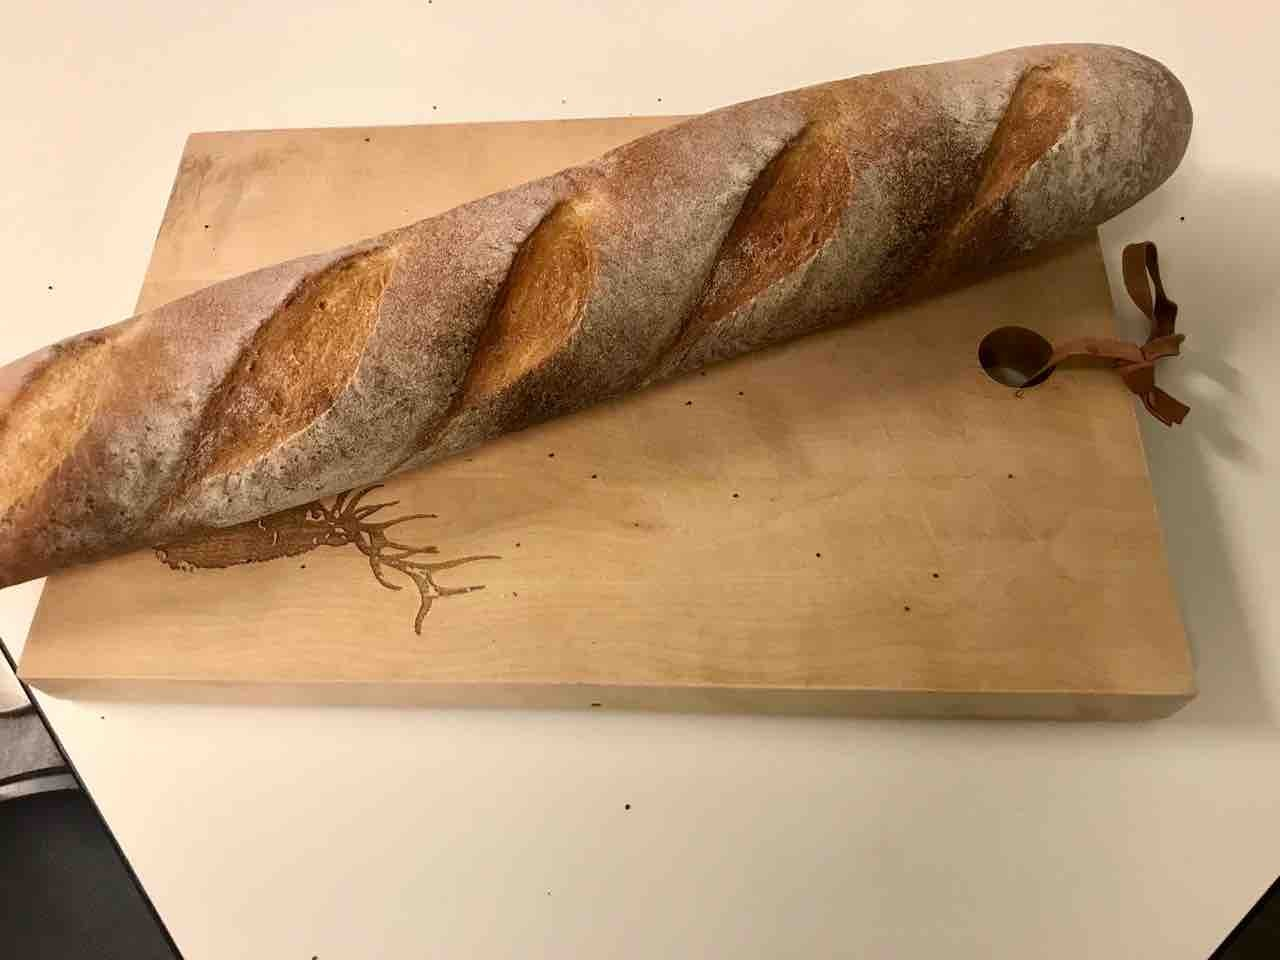 Fresh baguette from Pesso (28/03)